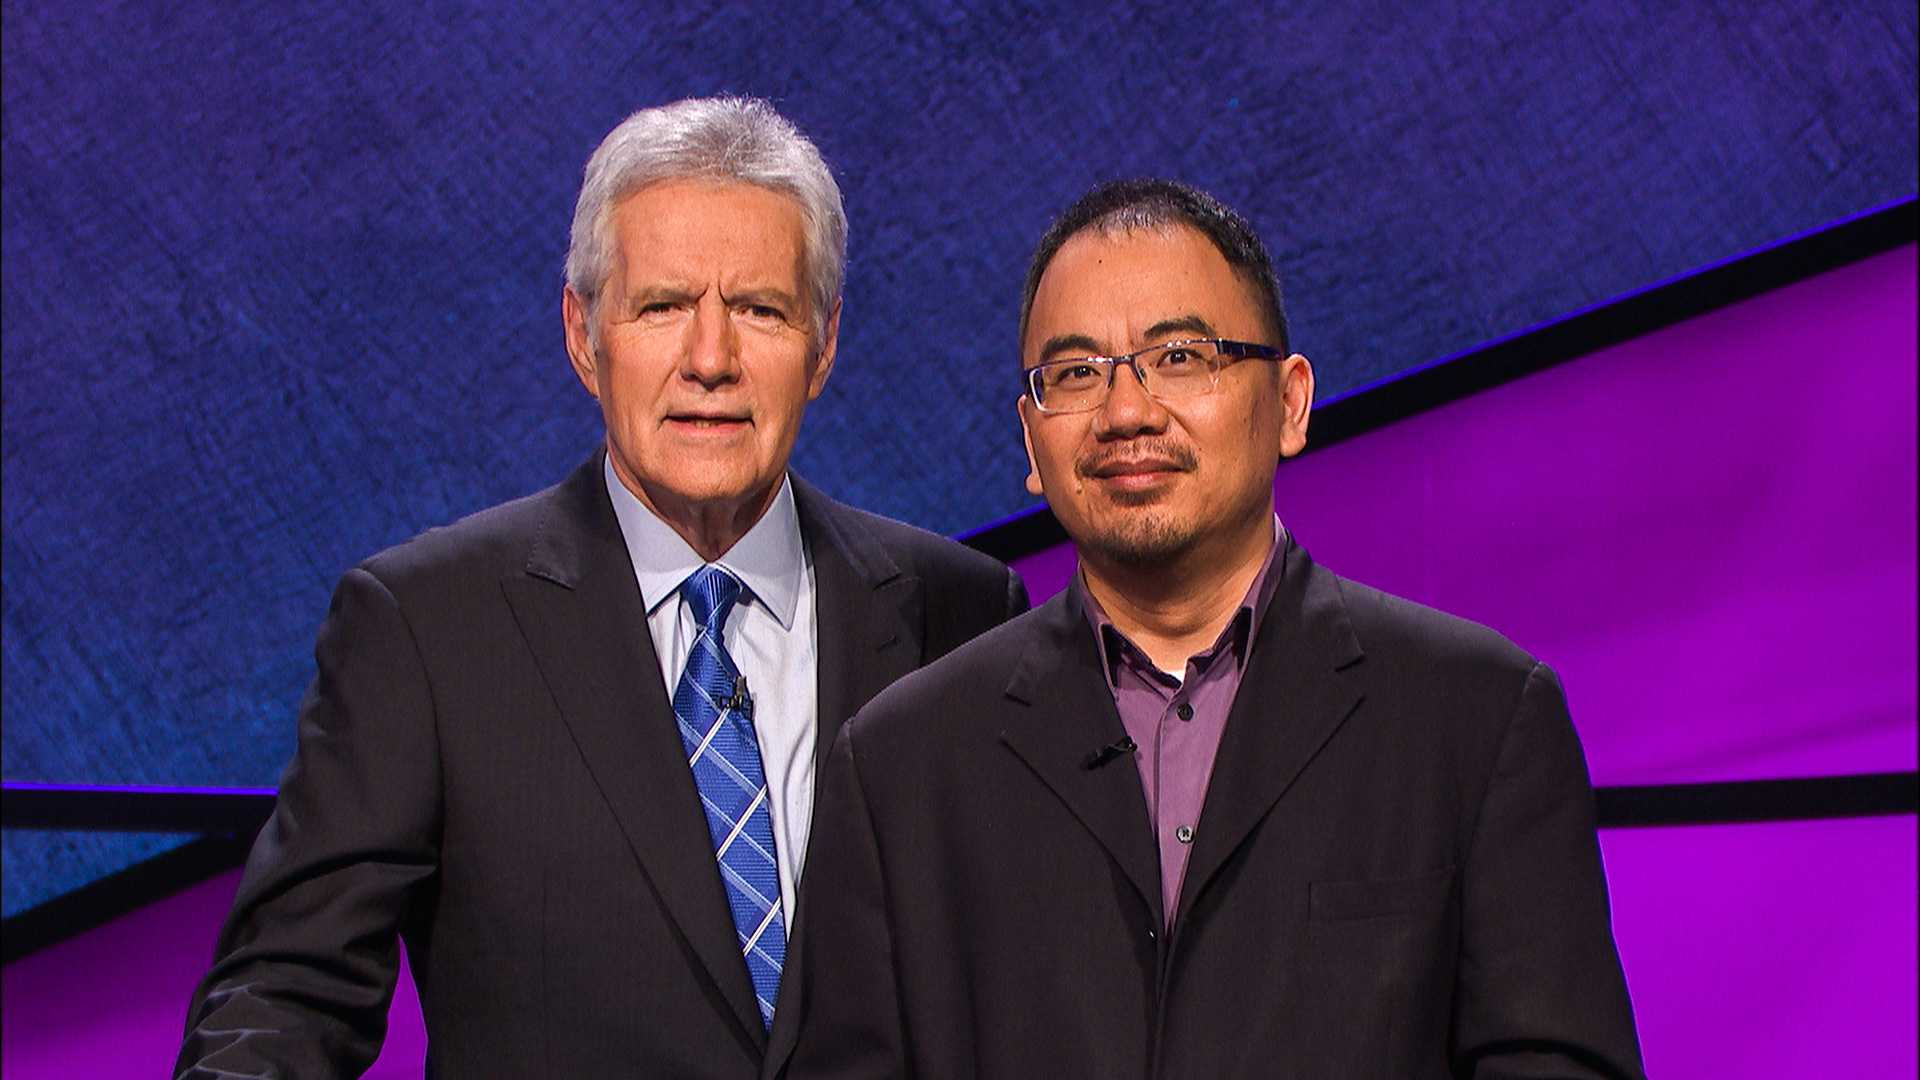 Assistant Professor of Music Theory Andrew Pau joins host Alex Trebek on the Jeopardy! set before one of Pau's six consecutive wins. He excelled in various topics, including Shakespeare and U.S. governors.